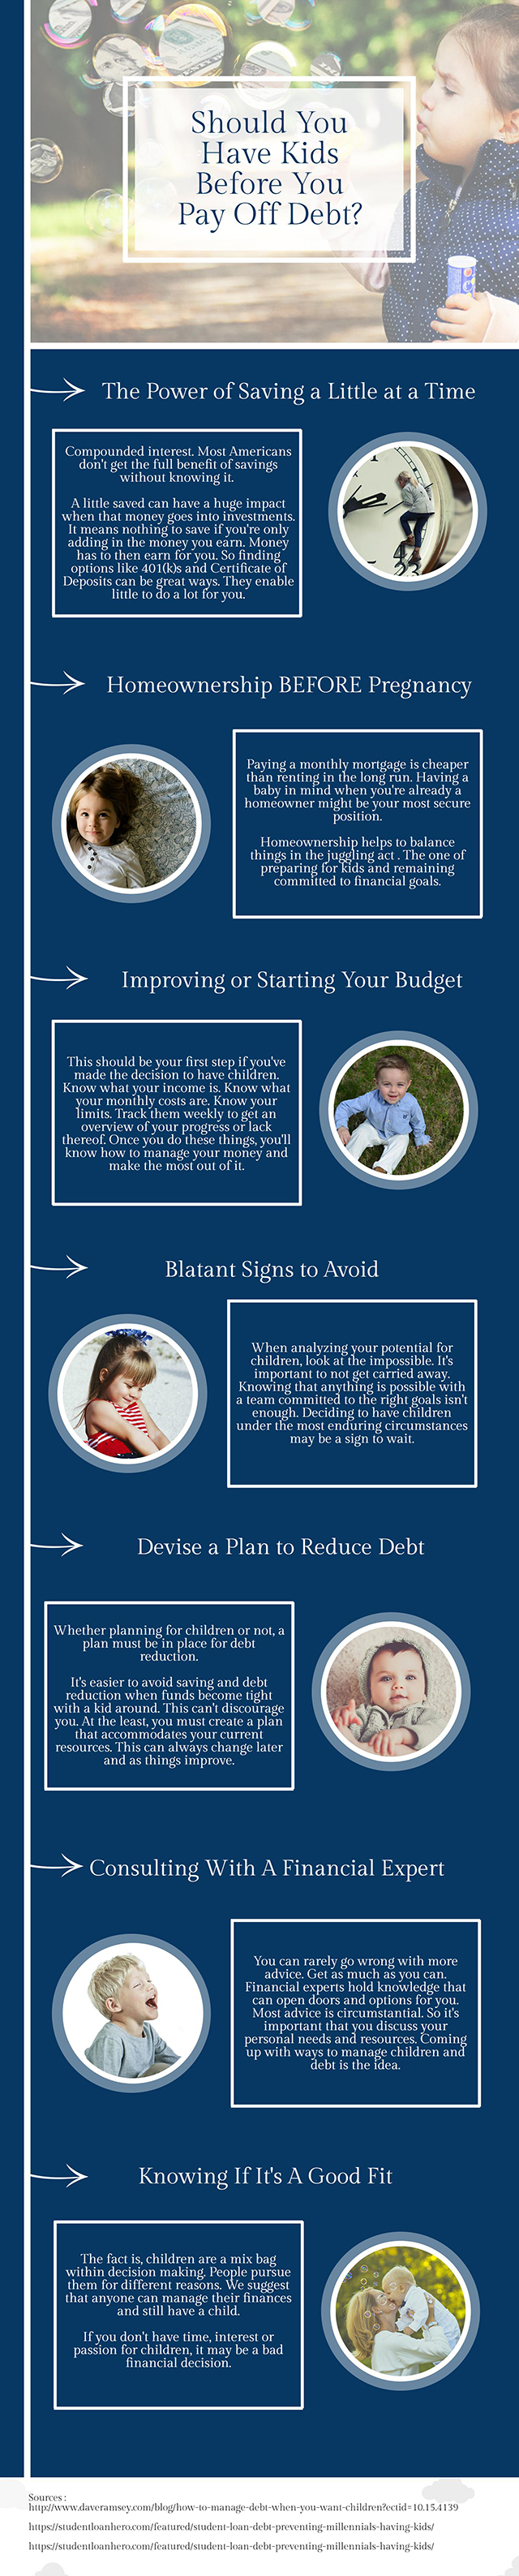 Should You Pay Off Debt Before Having Kids -infographic 1